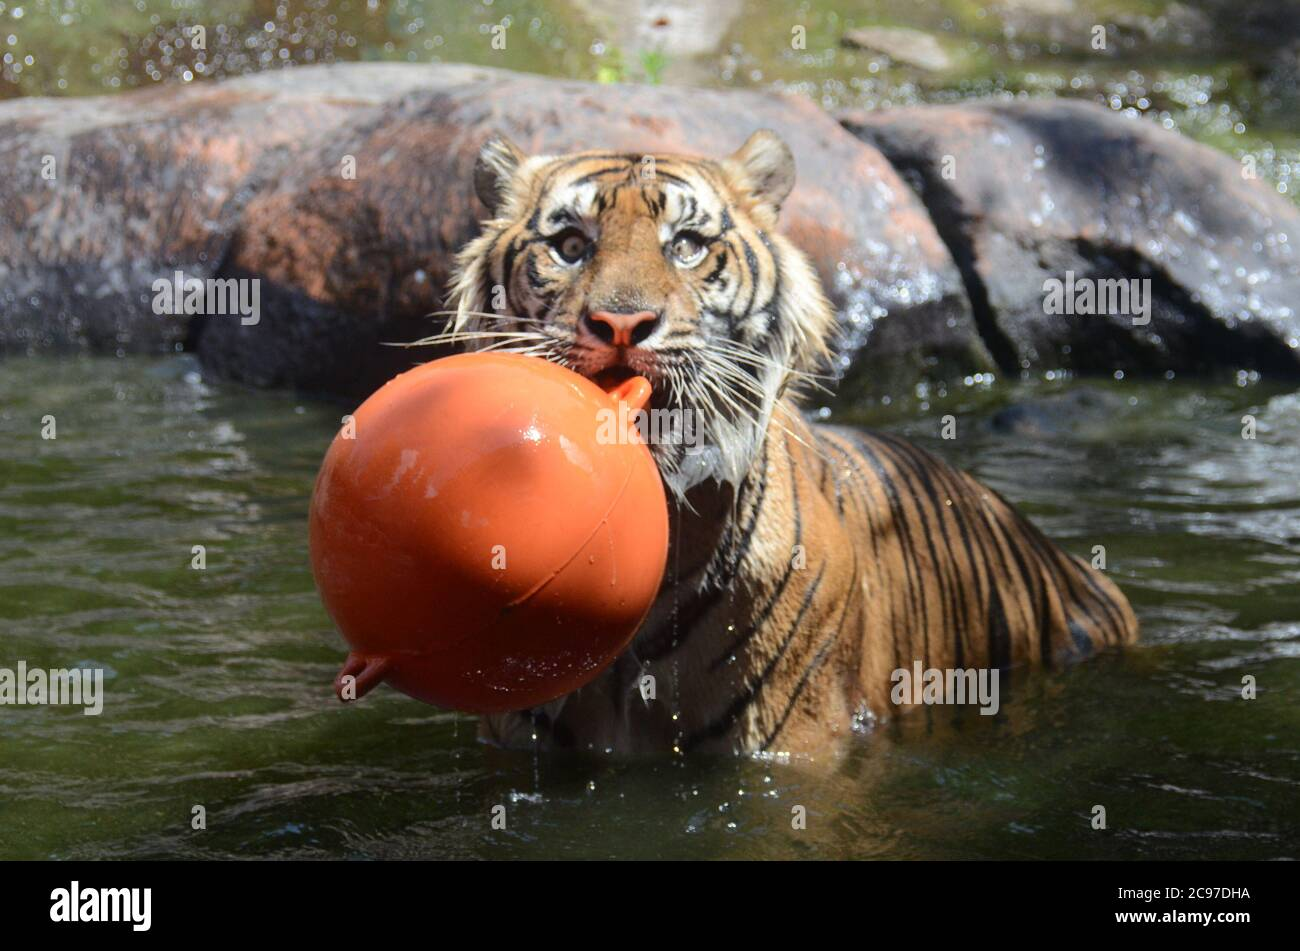 Malang Indonesia 29th July 2020 A Sumatran Tiger Is Seen At The Batu Secret Zoo In Malang East Java Indonesia On July 29 2020 The Annual International Tiger Day Also Known As